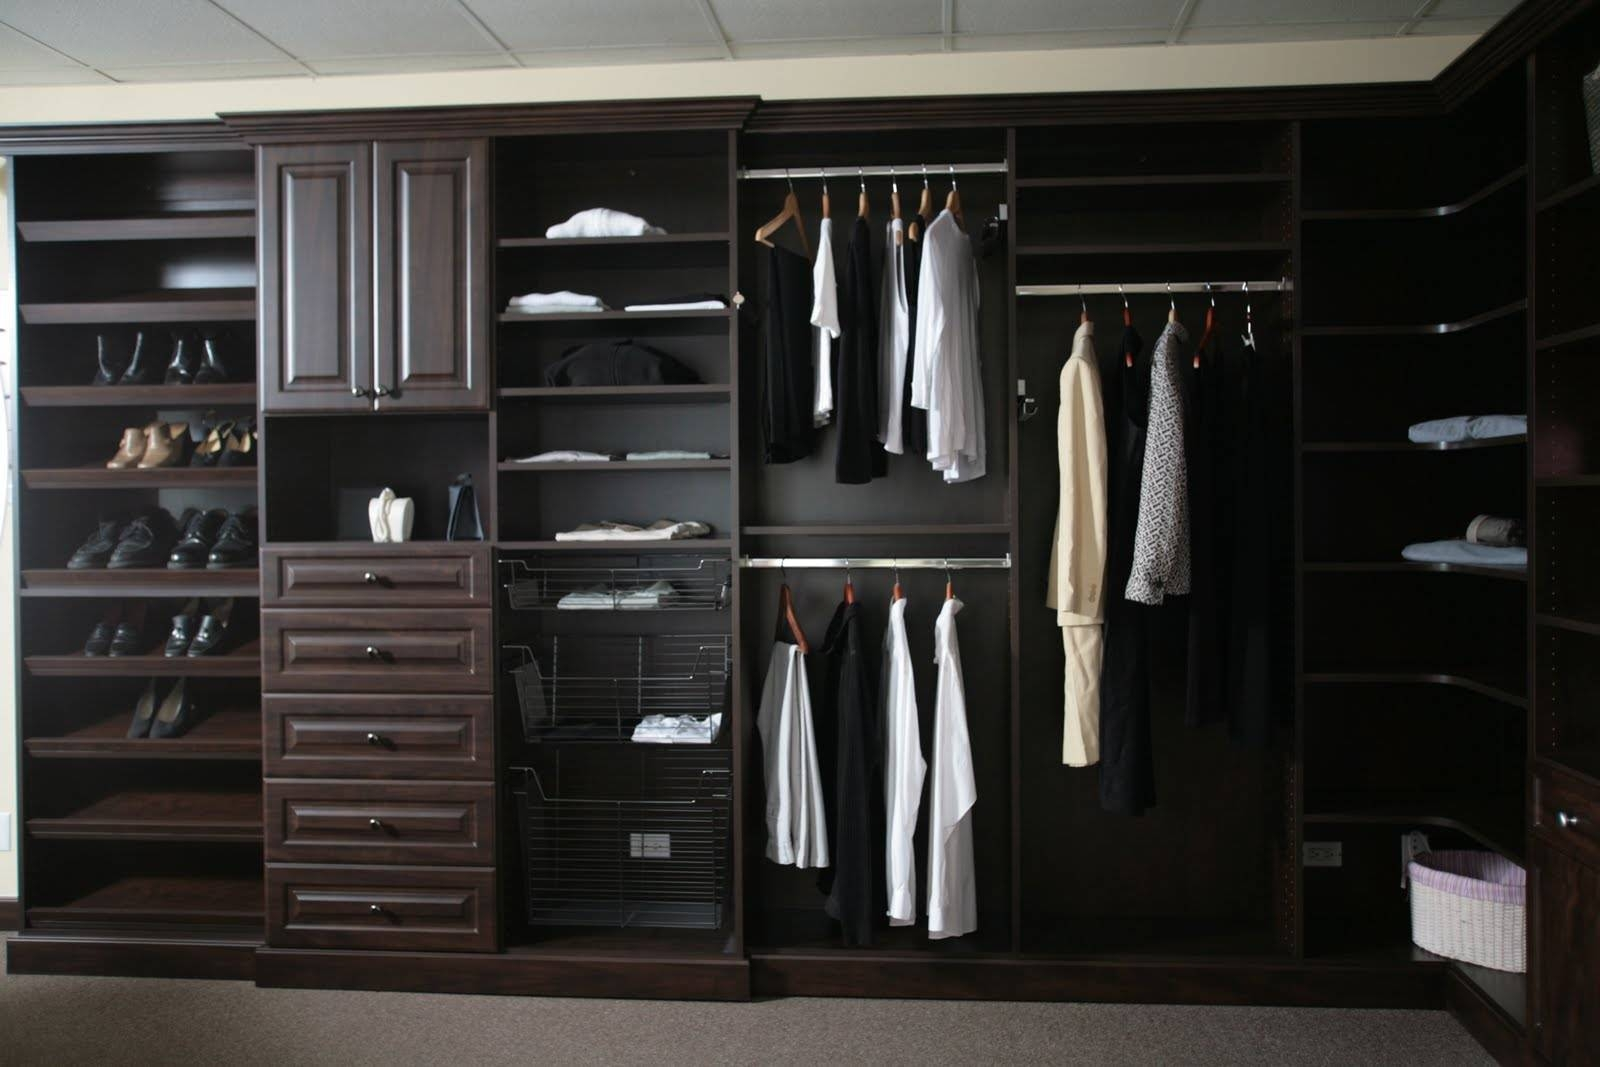 Furniture. L Shaped Dark Brown Polished Wooden Wardrobe Closet regarding Dark Wood Wardrobe Closet (Image 13 of 30)